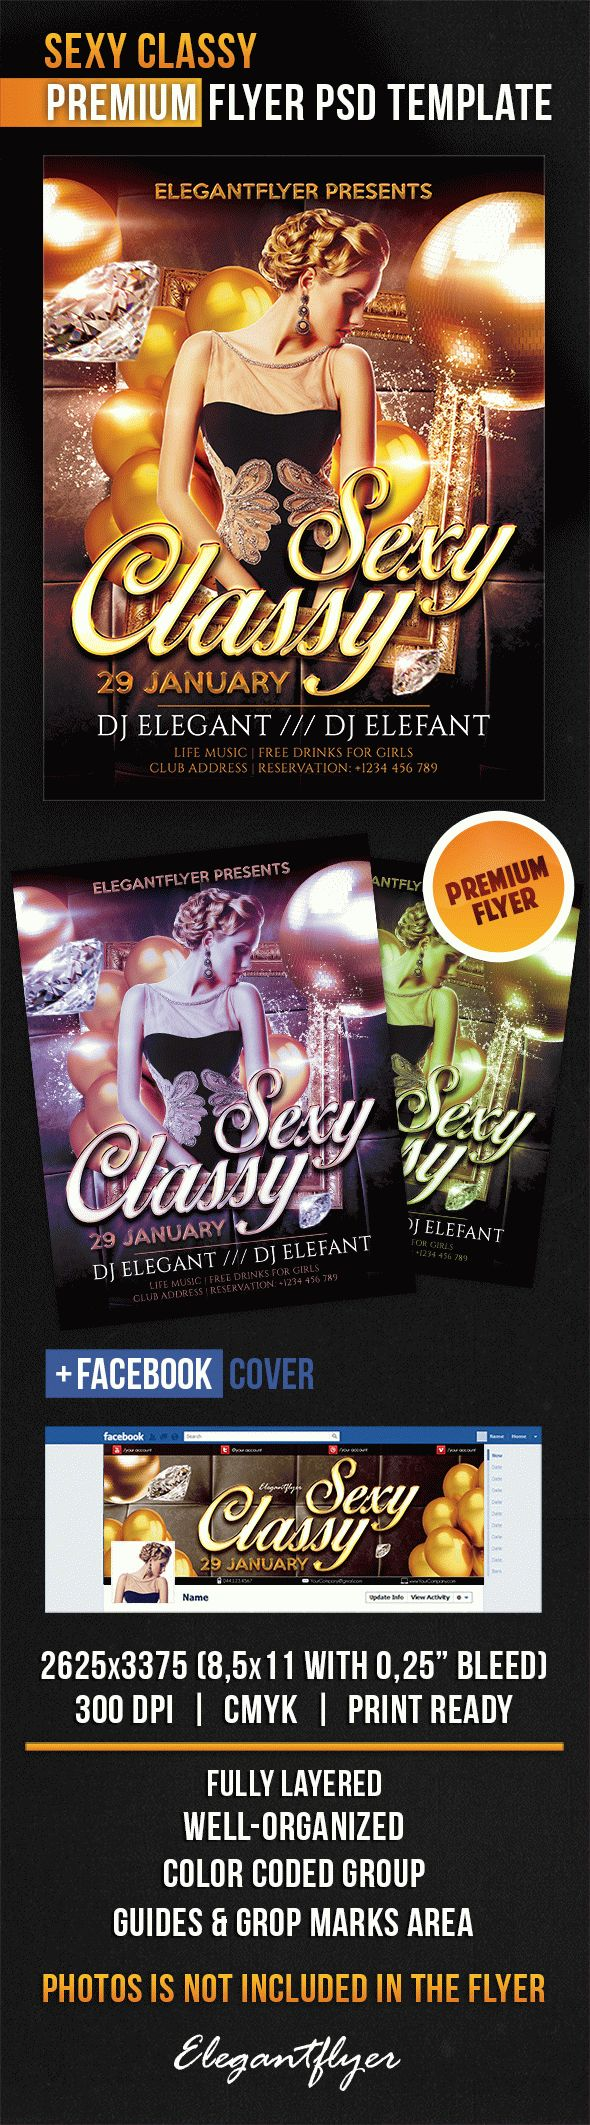 Sexy Classy – Flyer PSD Template + Facebook Cover